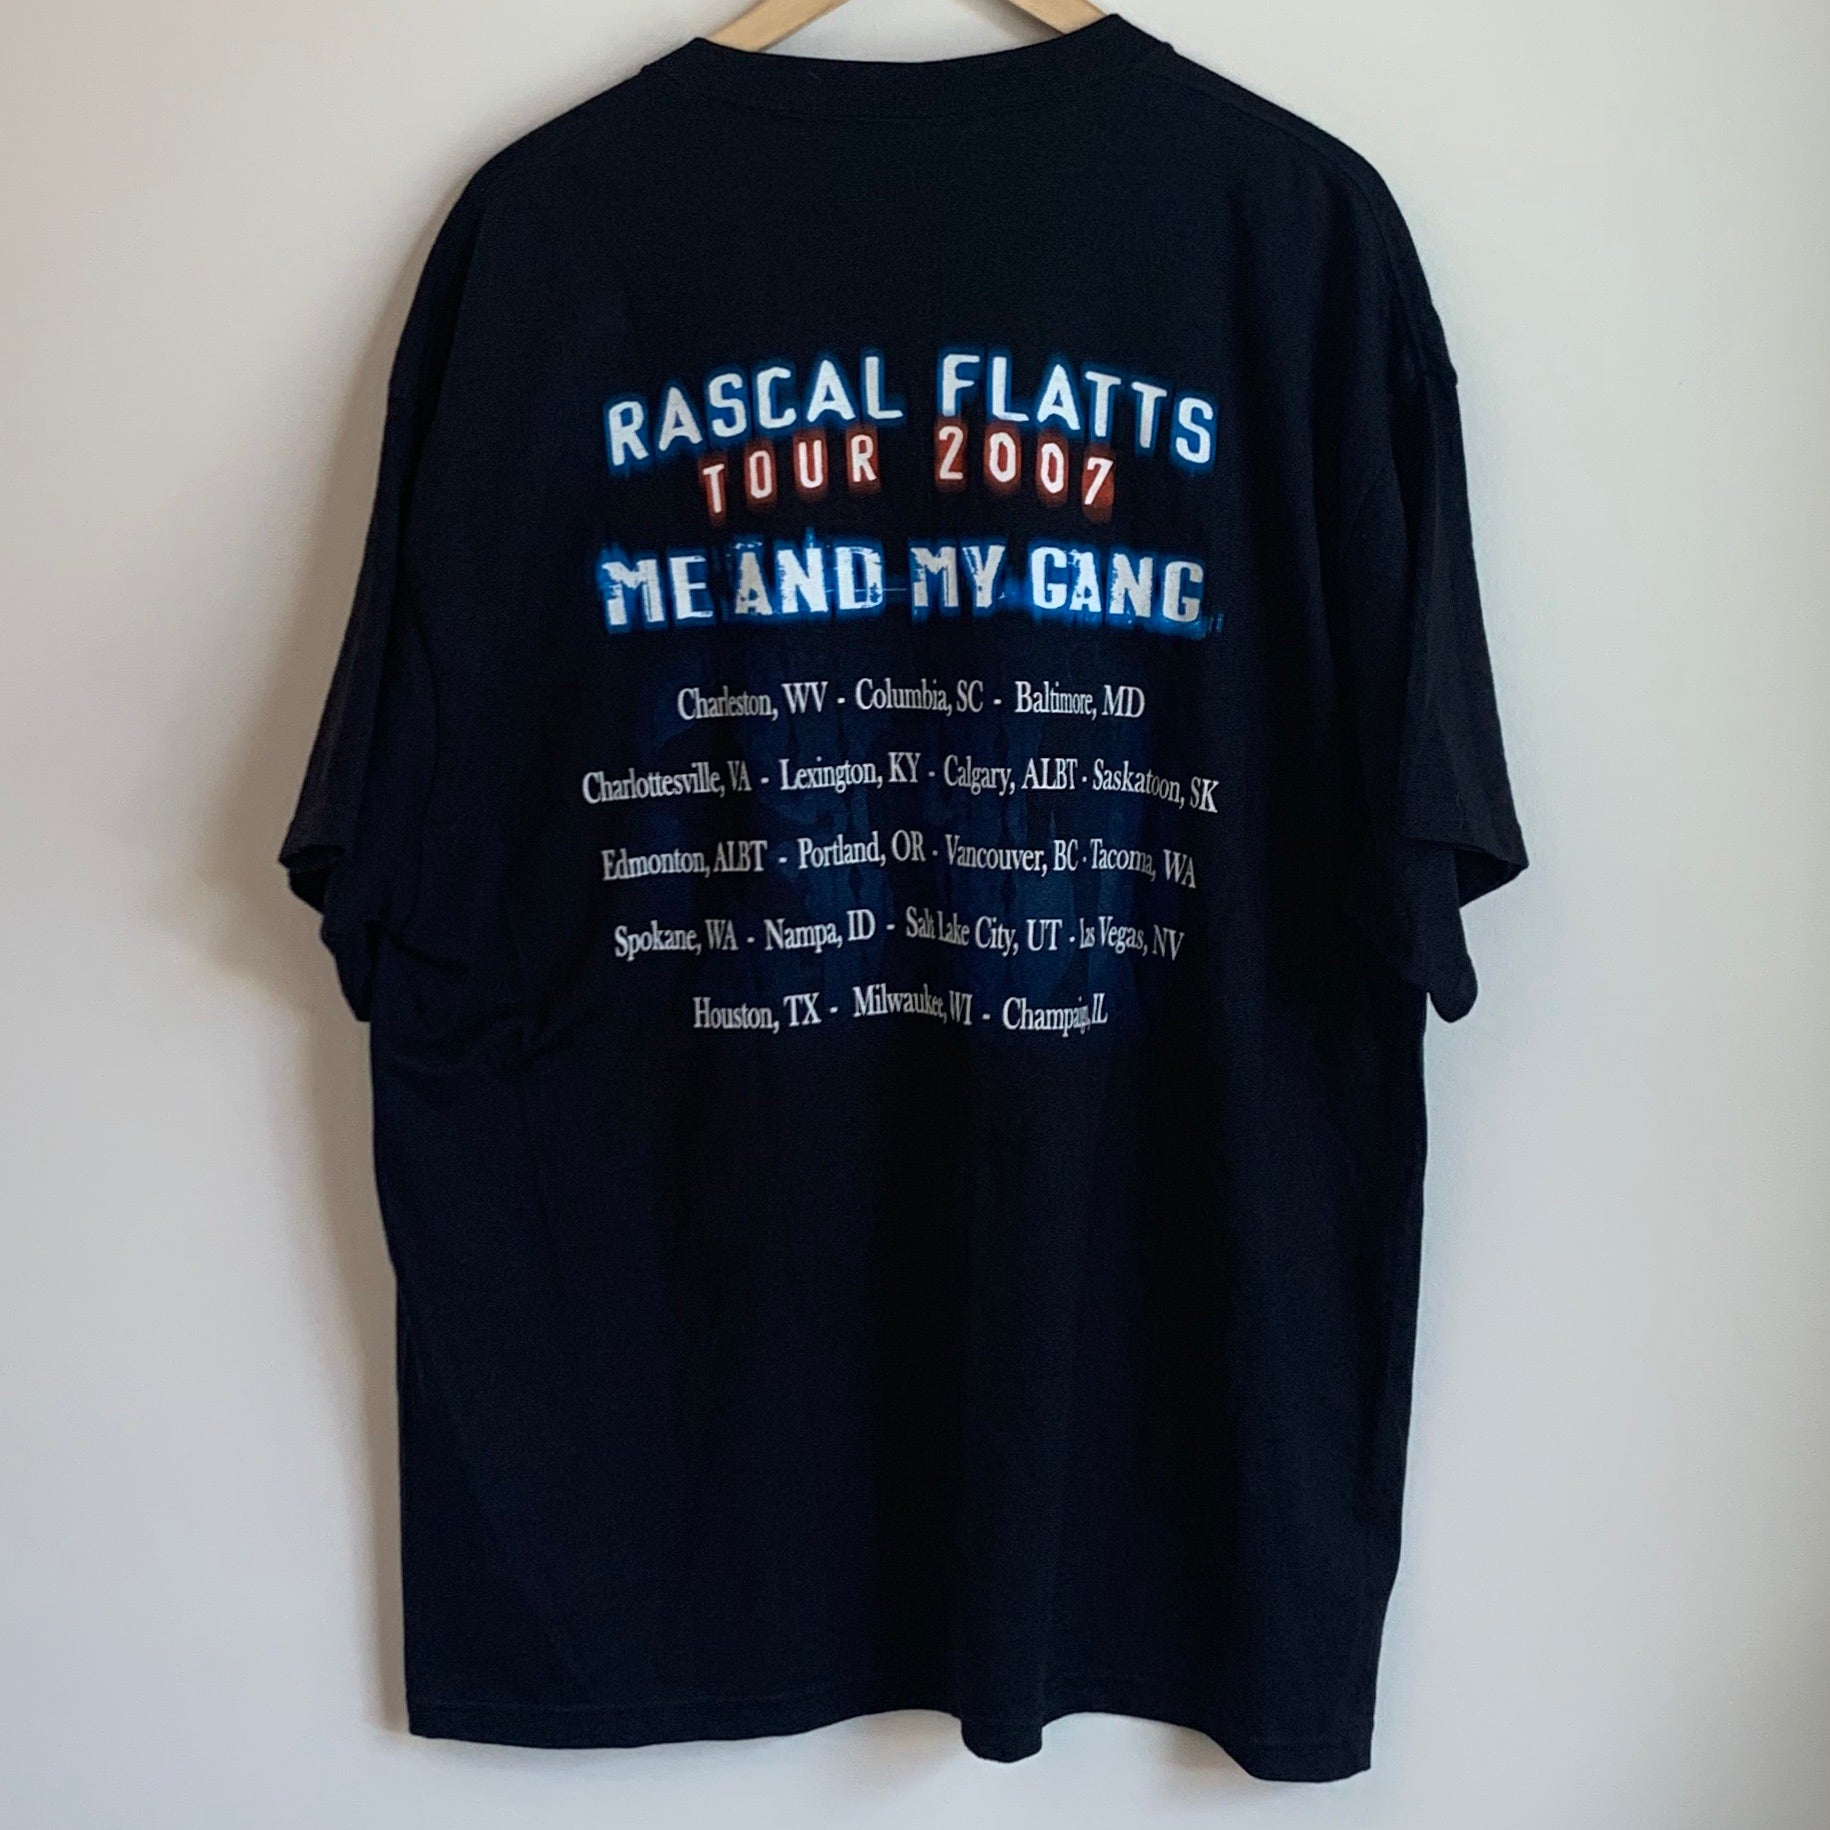 Rascal Flatts Me And My Gang 2007 Tour Black Tee Shirt